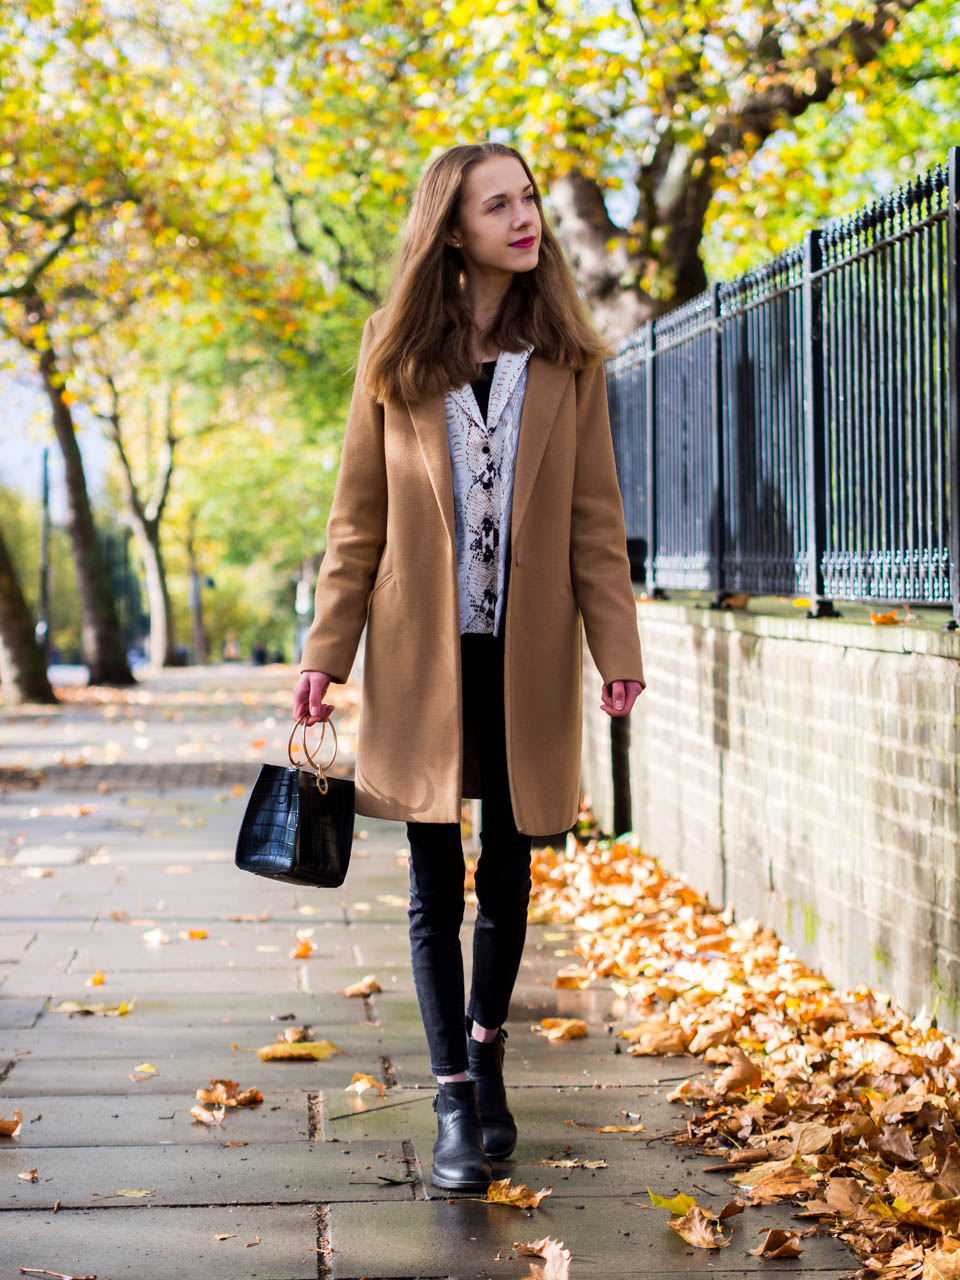 fashion-blogger-outfit-camel-coat-snake-print